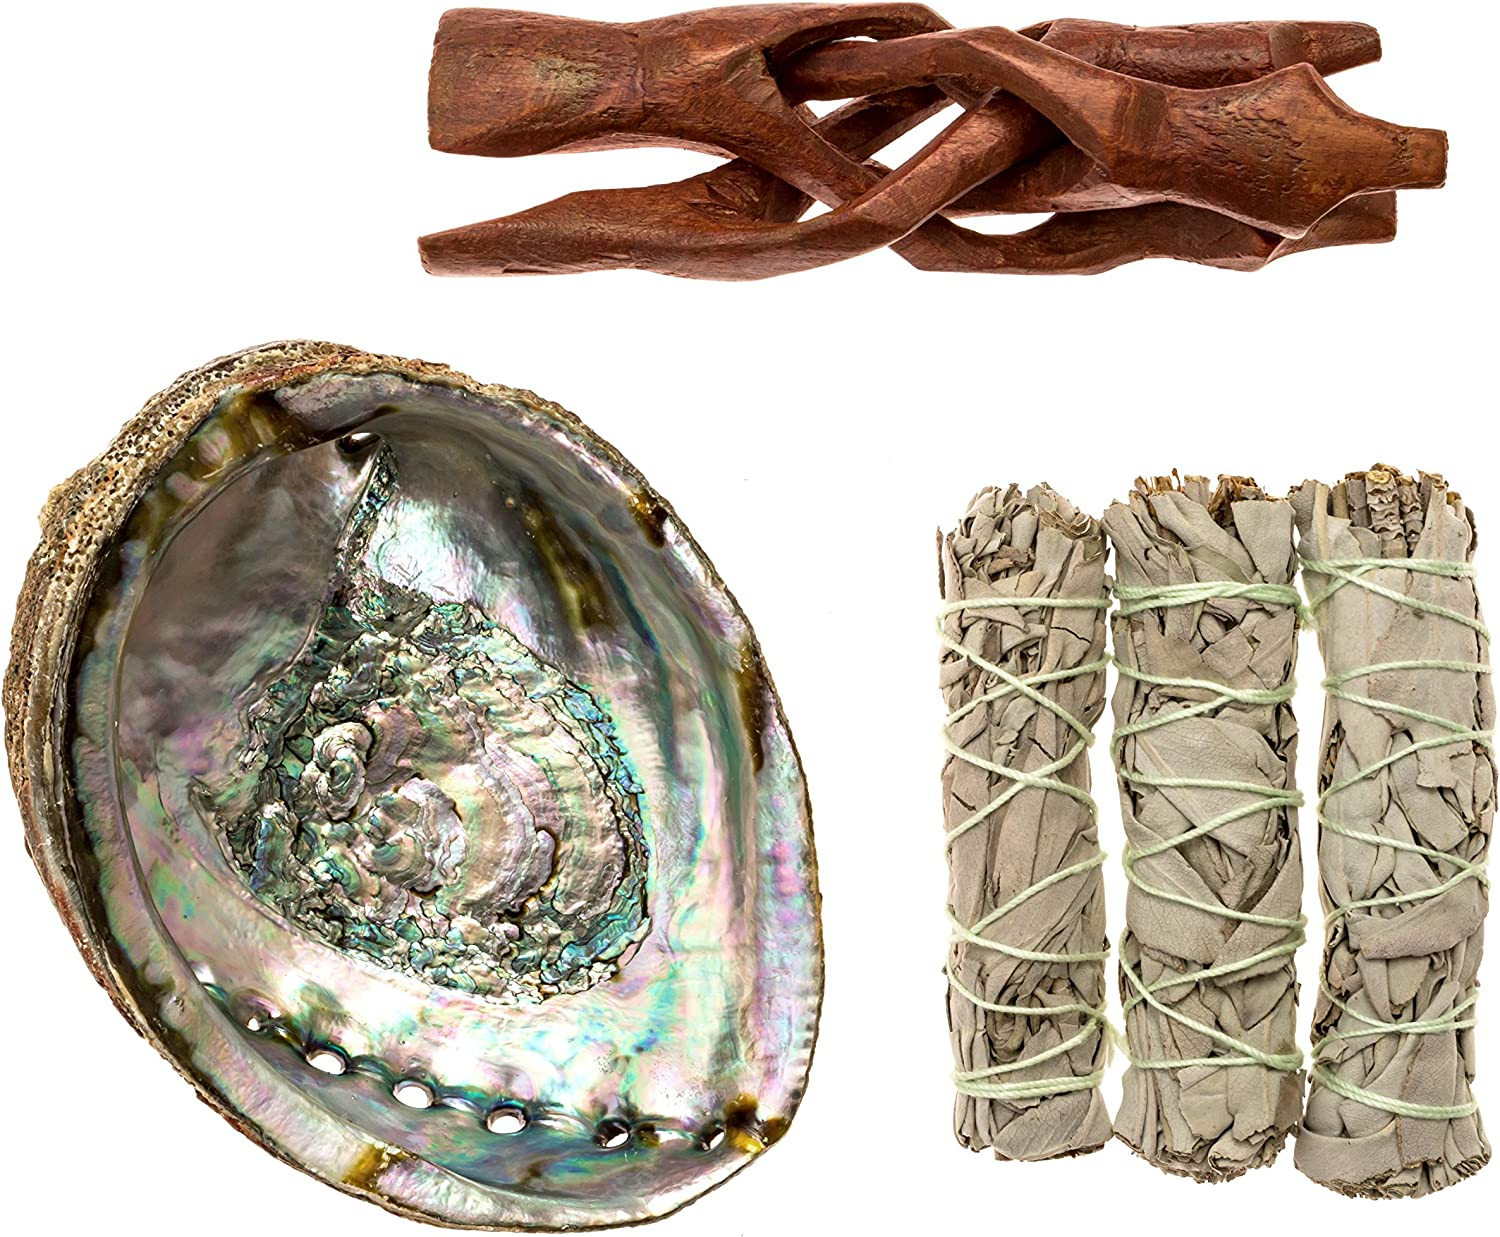 Premium Bundle with 5.5 Inch or Larger Abalone Shell, Stained Wooden Tripod Stand, and 3 California White Sage Smudge Sticks for Incense Burning, Home Fragrance, Energy Clearing, Yoga, Meditation